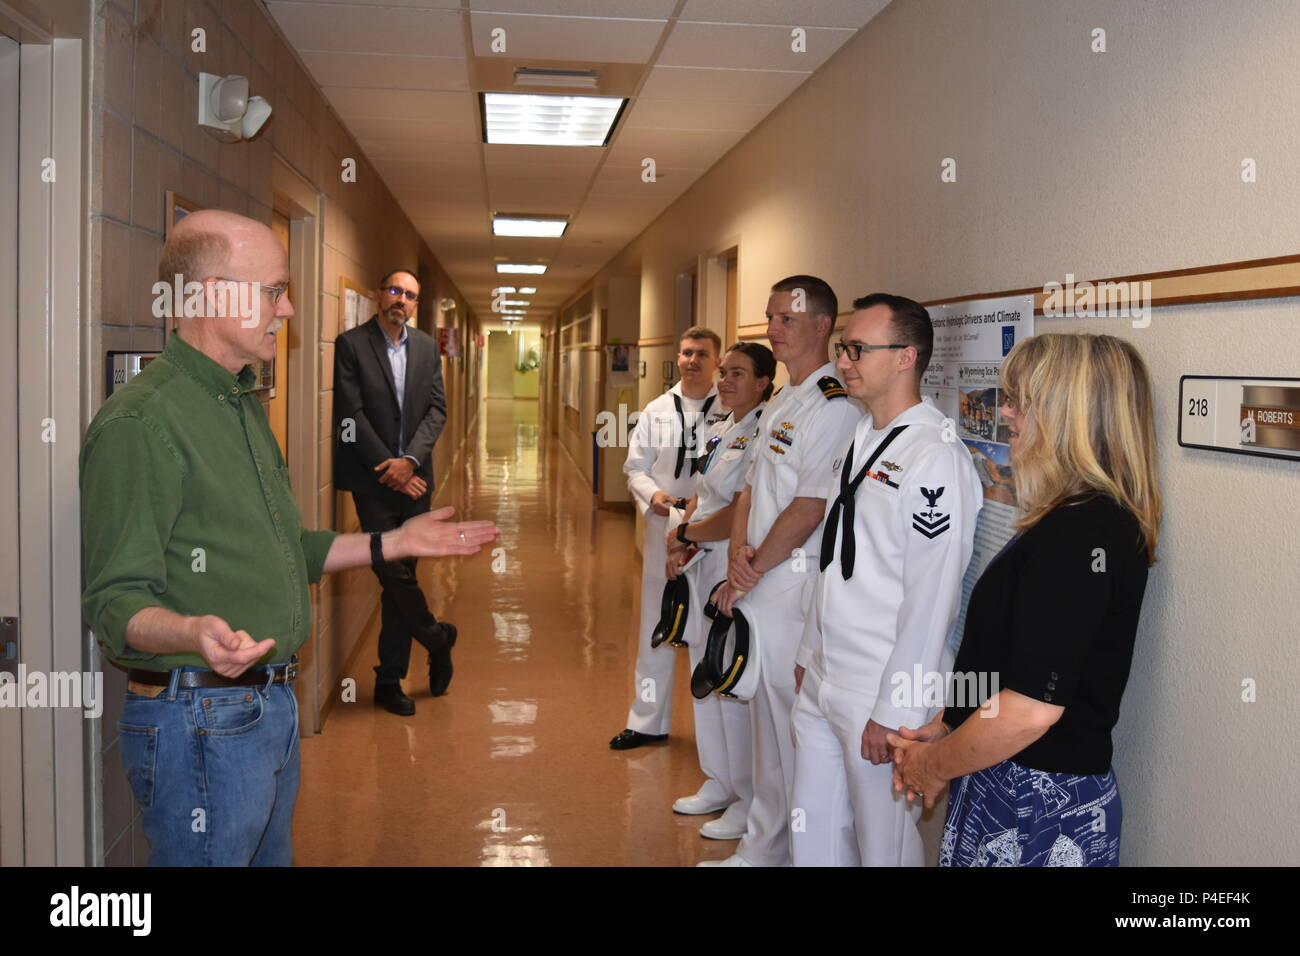 Dr. Joe McConnell from the Desert Research Institute in Reno speaks with members from the U.S. Navy's Meteorology and Oceanography Command about the process of drilling ice core samples and how they reveal the impact of humans on the environment going back thousands of years. - Stock Image